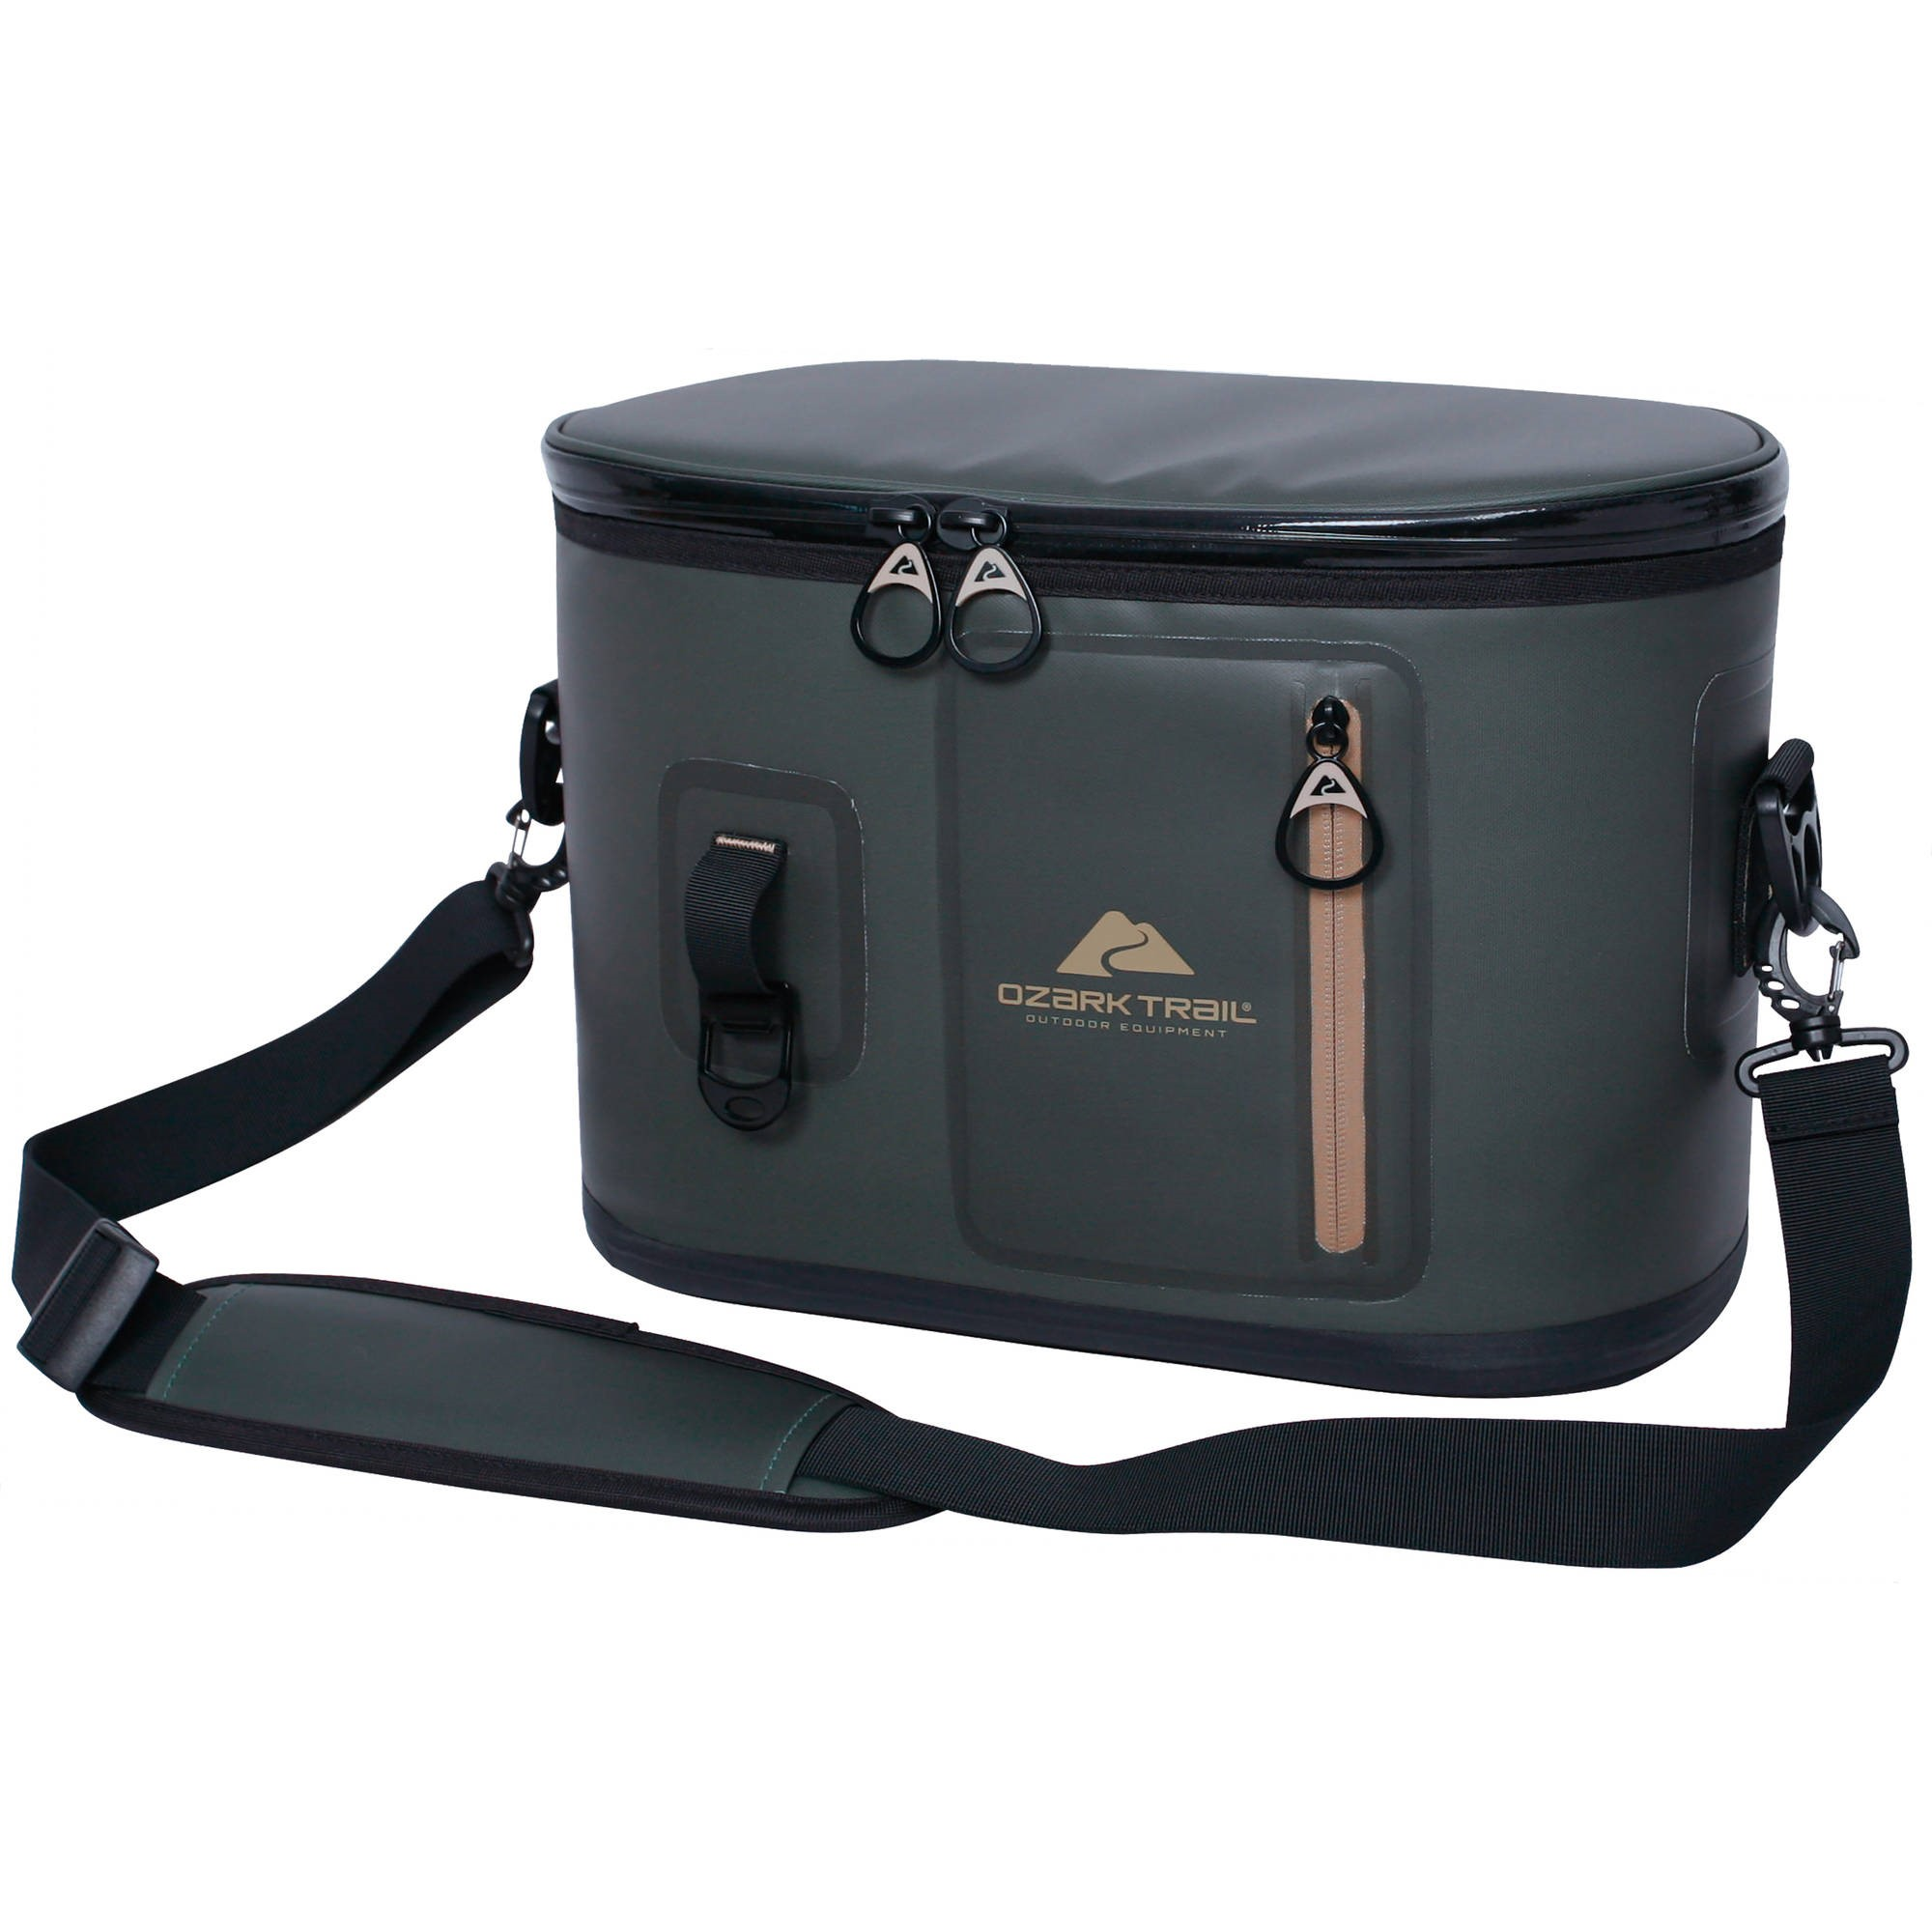 Ozark Trail 12-Can Premium Cooler